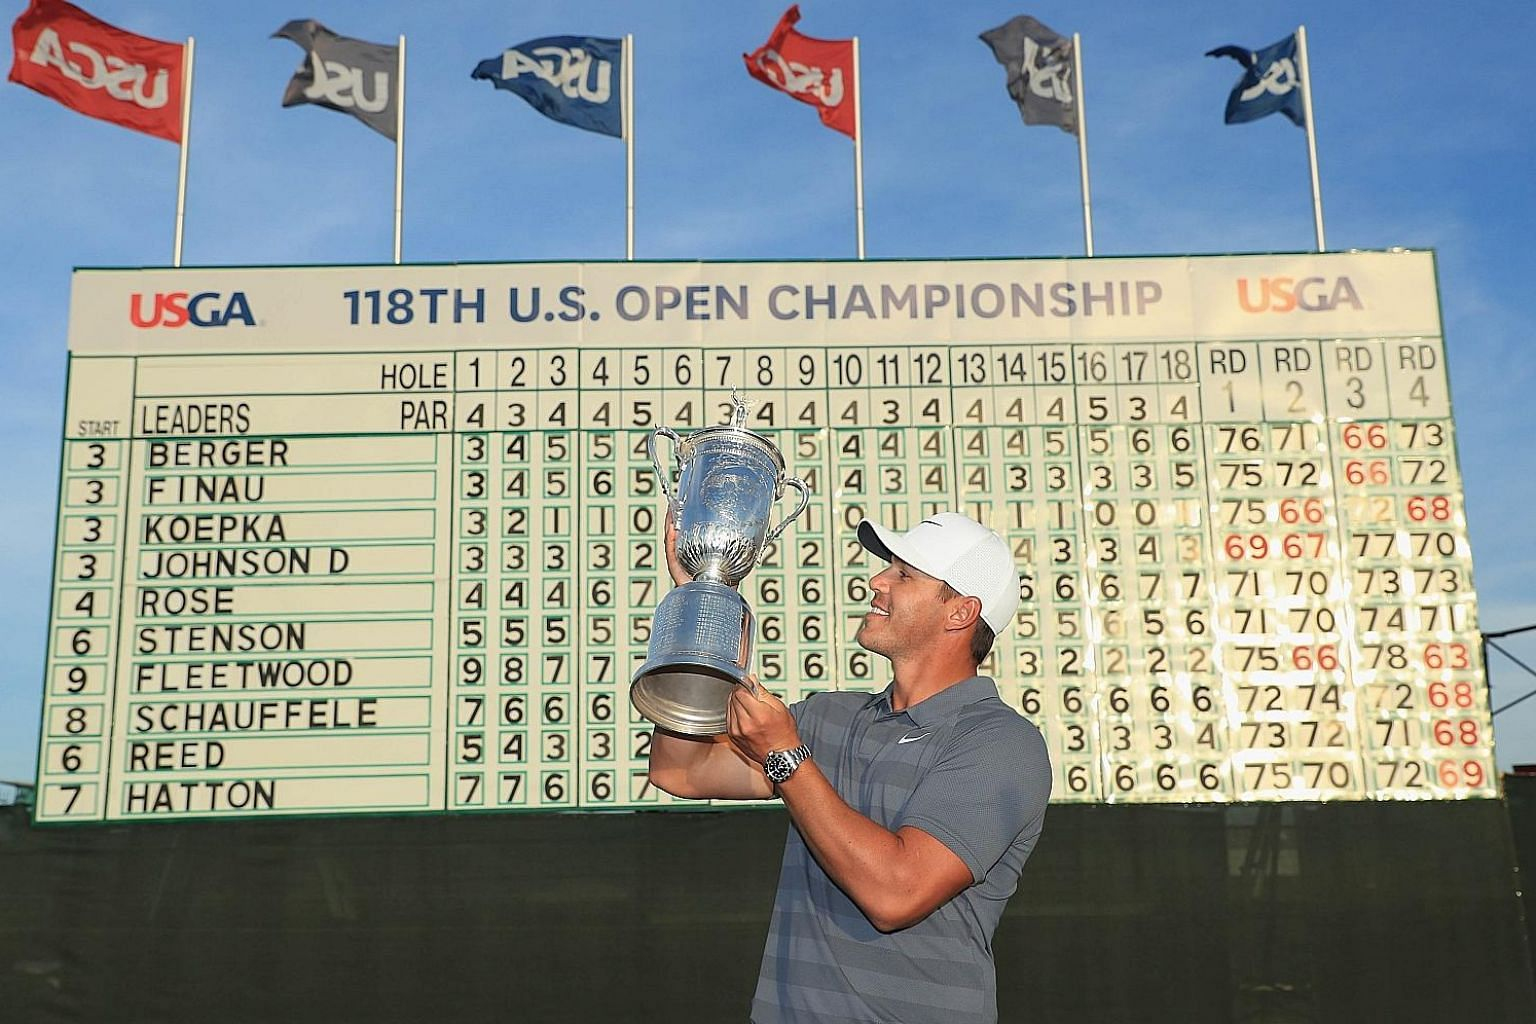 Brooks Koepka admiring the US Open trophy on Sunday. Since the World War II era, he is only the third man to retain the title, after Ben Hogan (1950-51) and Curtis Strange (1988-89).